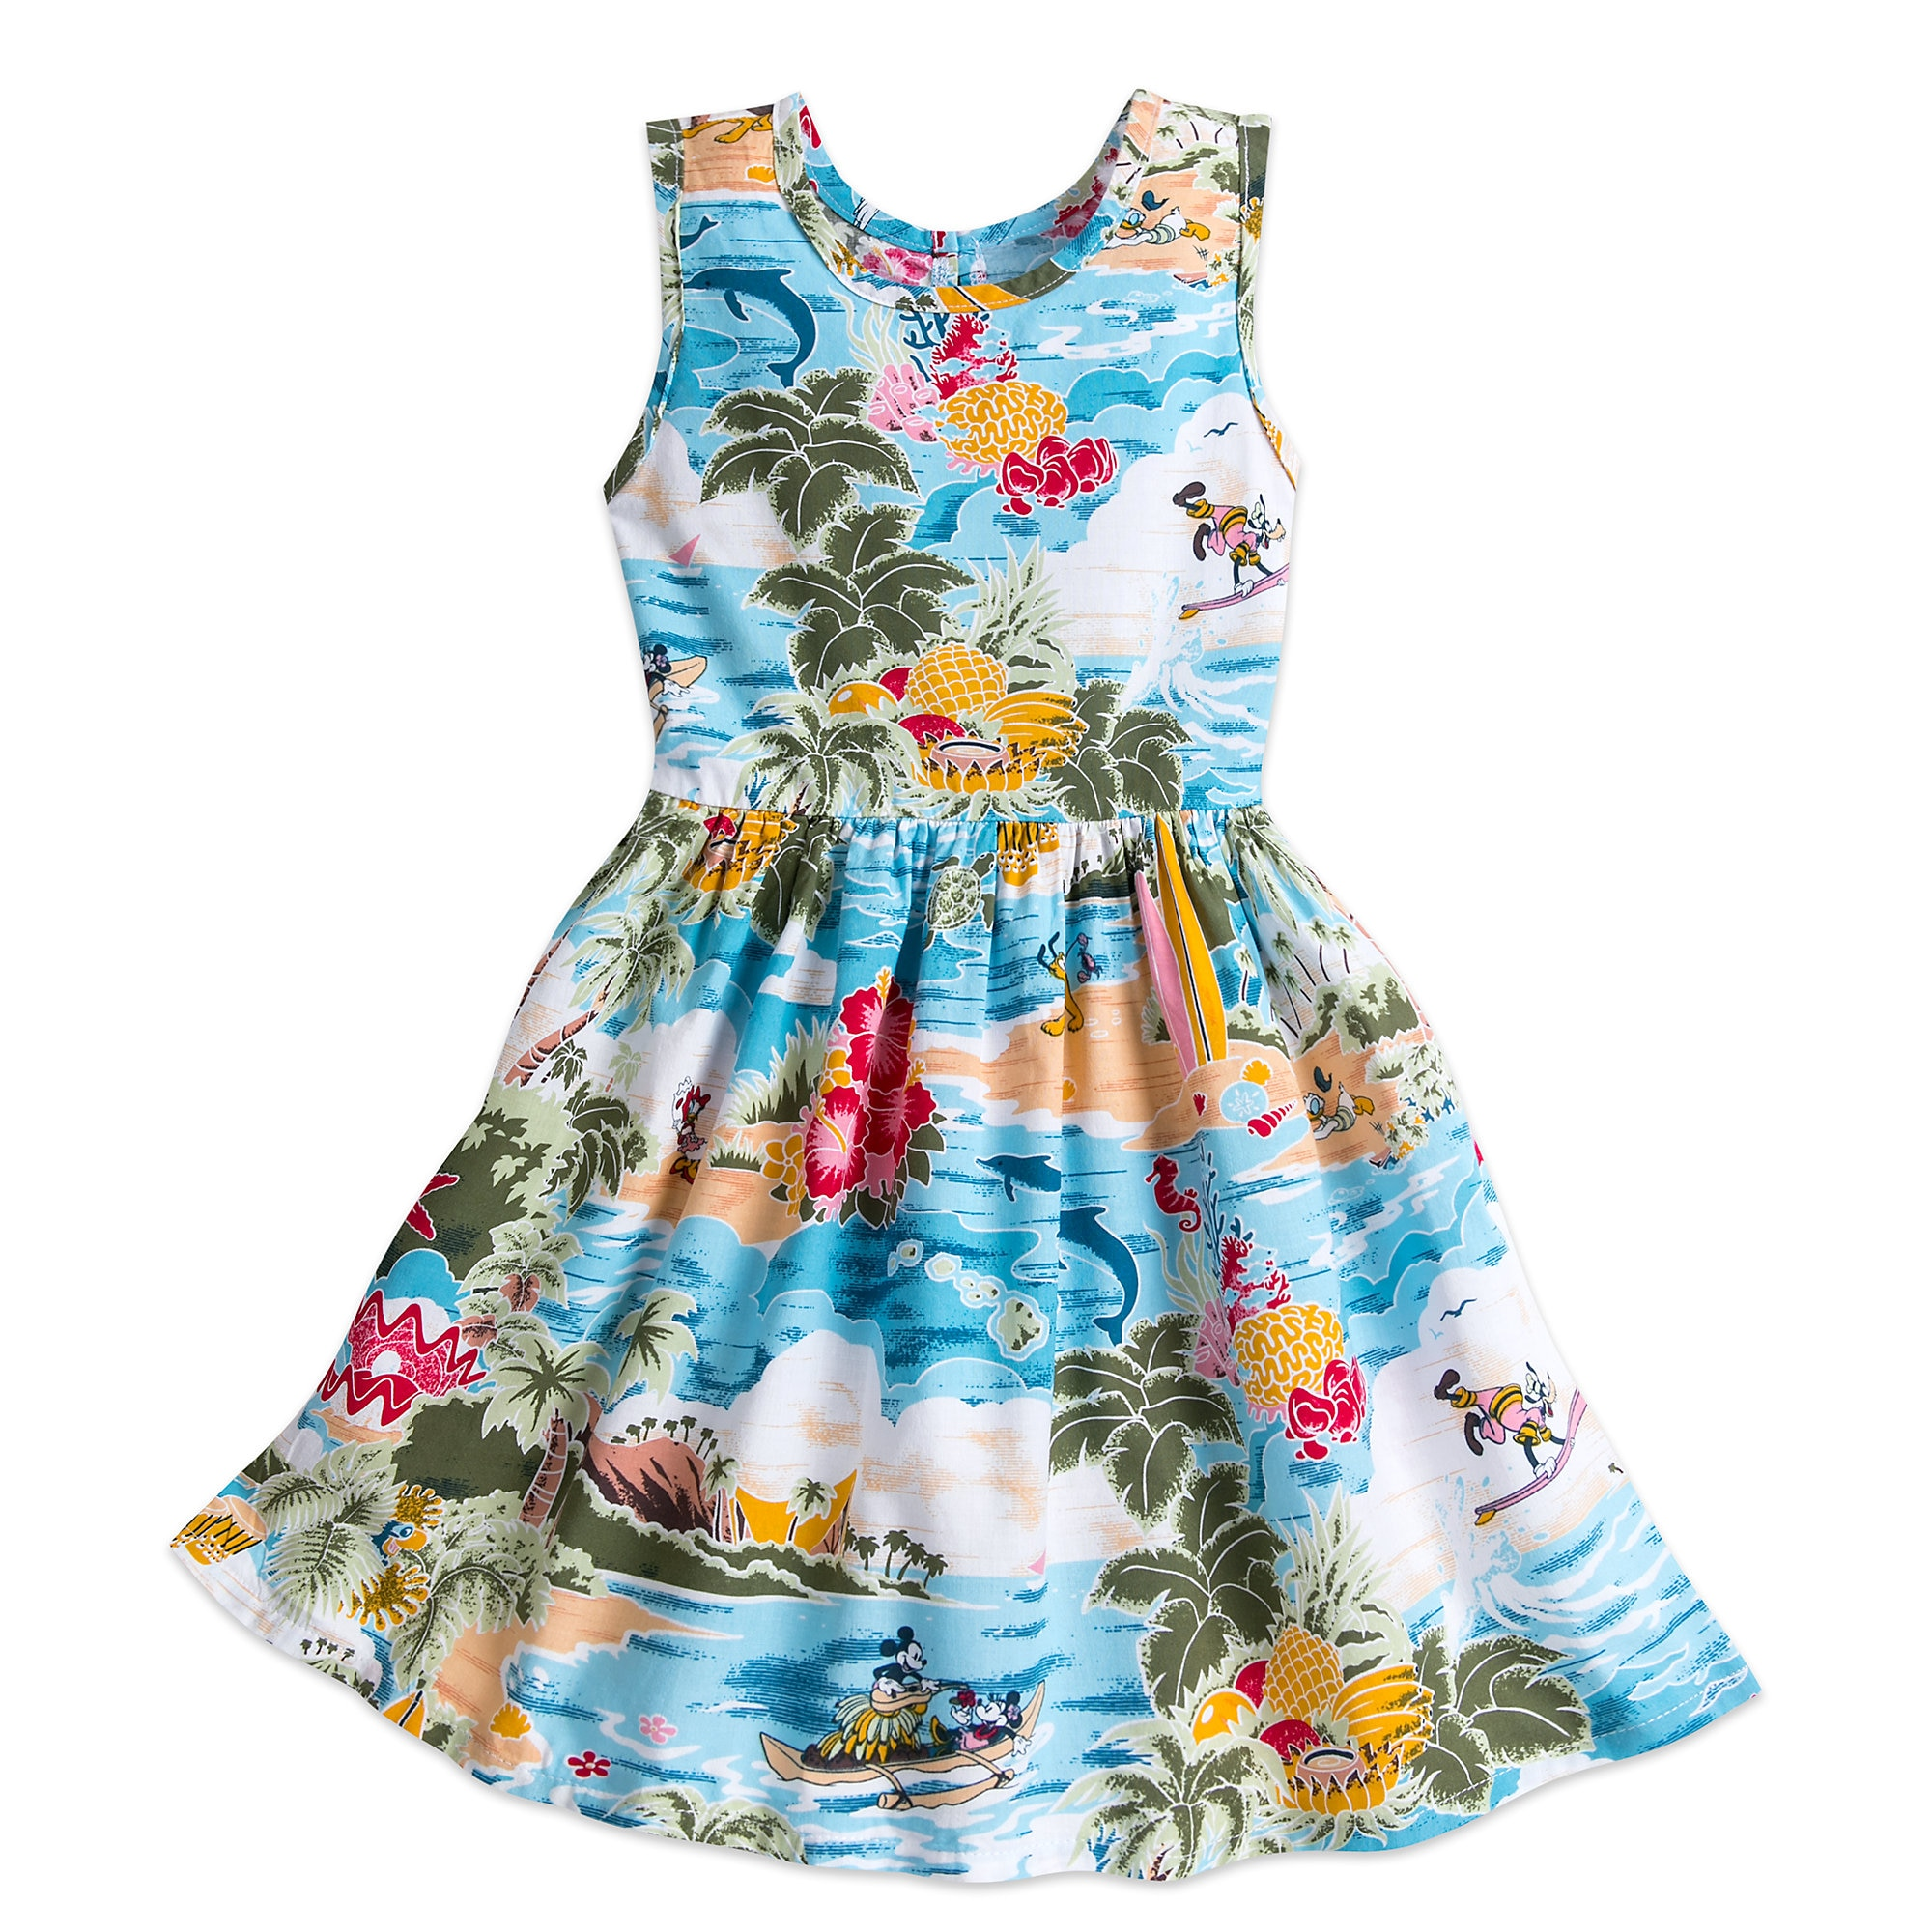 Thumbnail Image of Mickey Mouse and Friends Hawaiian Dress for Girls # 1  sc 1 st  shopDisney & Mickey Mouse and Friends Hawaiian Dress for Girls | shopDisney